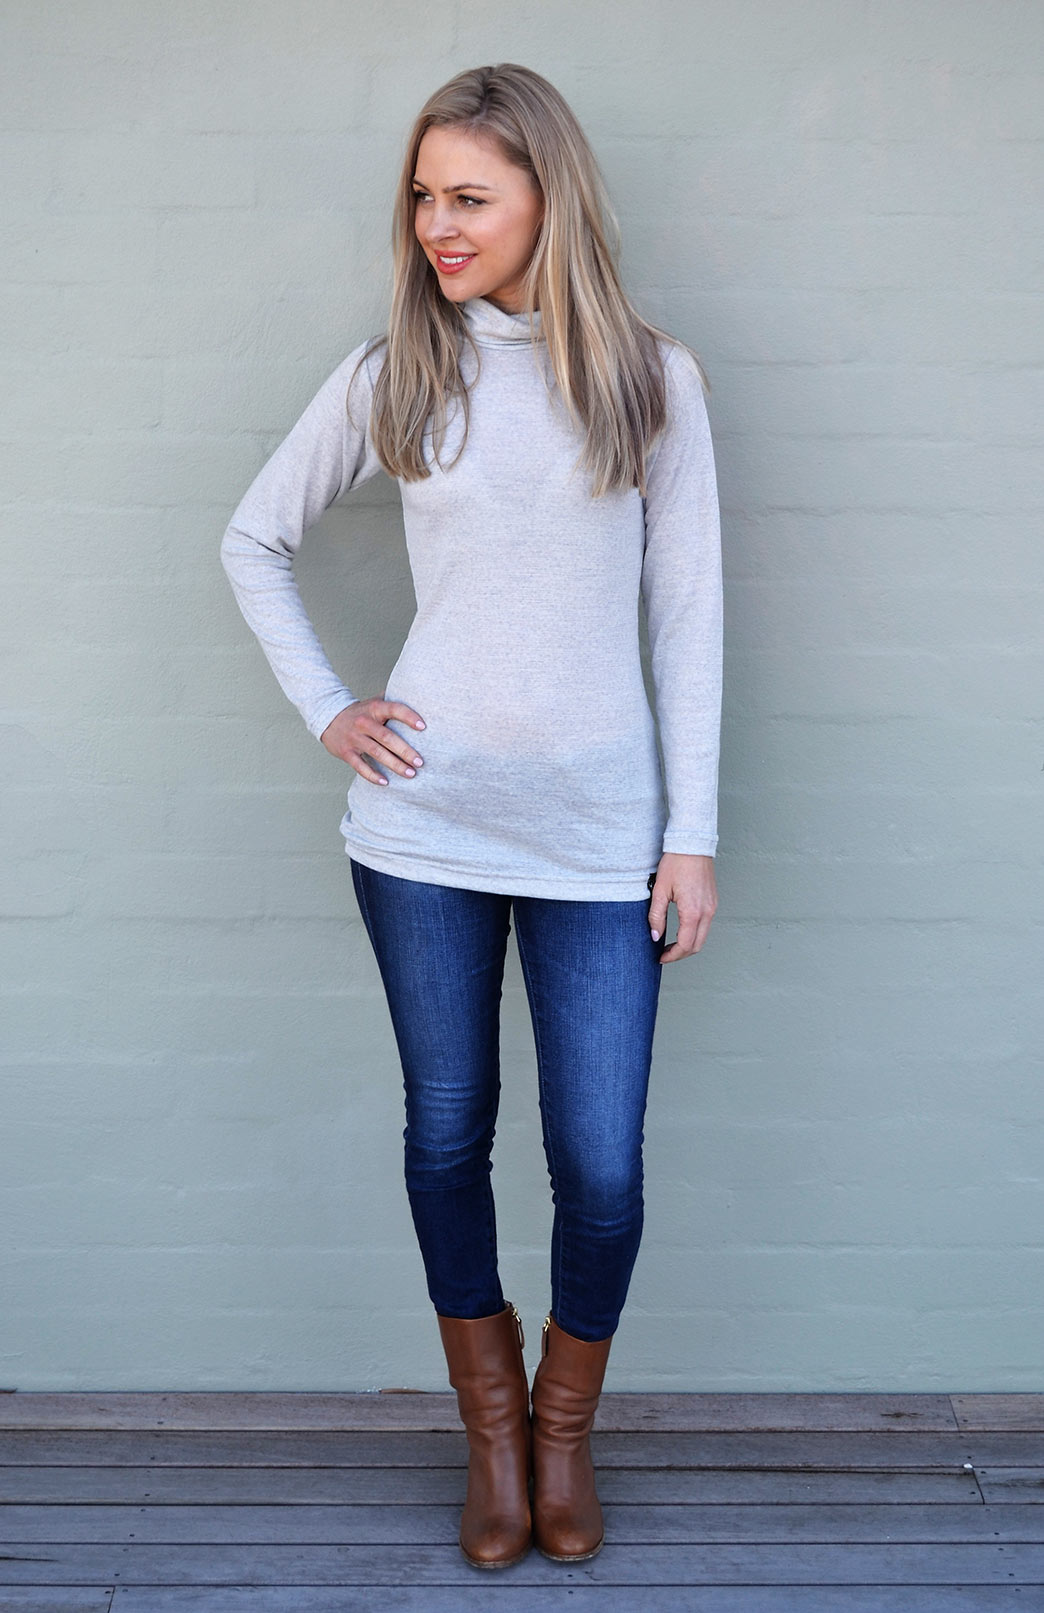 Polo Neck Top - Women's Light Grey Marl and Ivory Speckled Long Sleeved Polo Neck Top - Smitten Merino Tasmania Australia